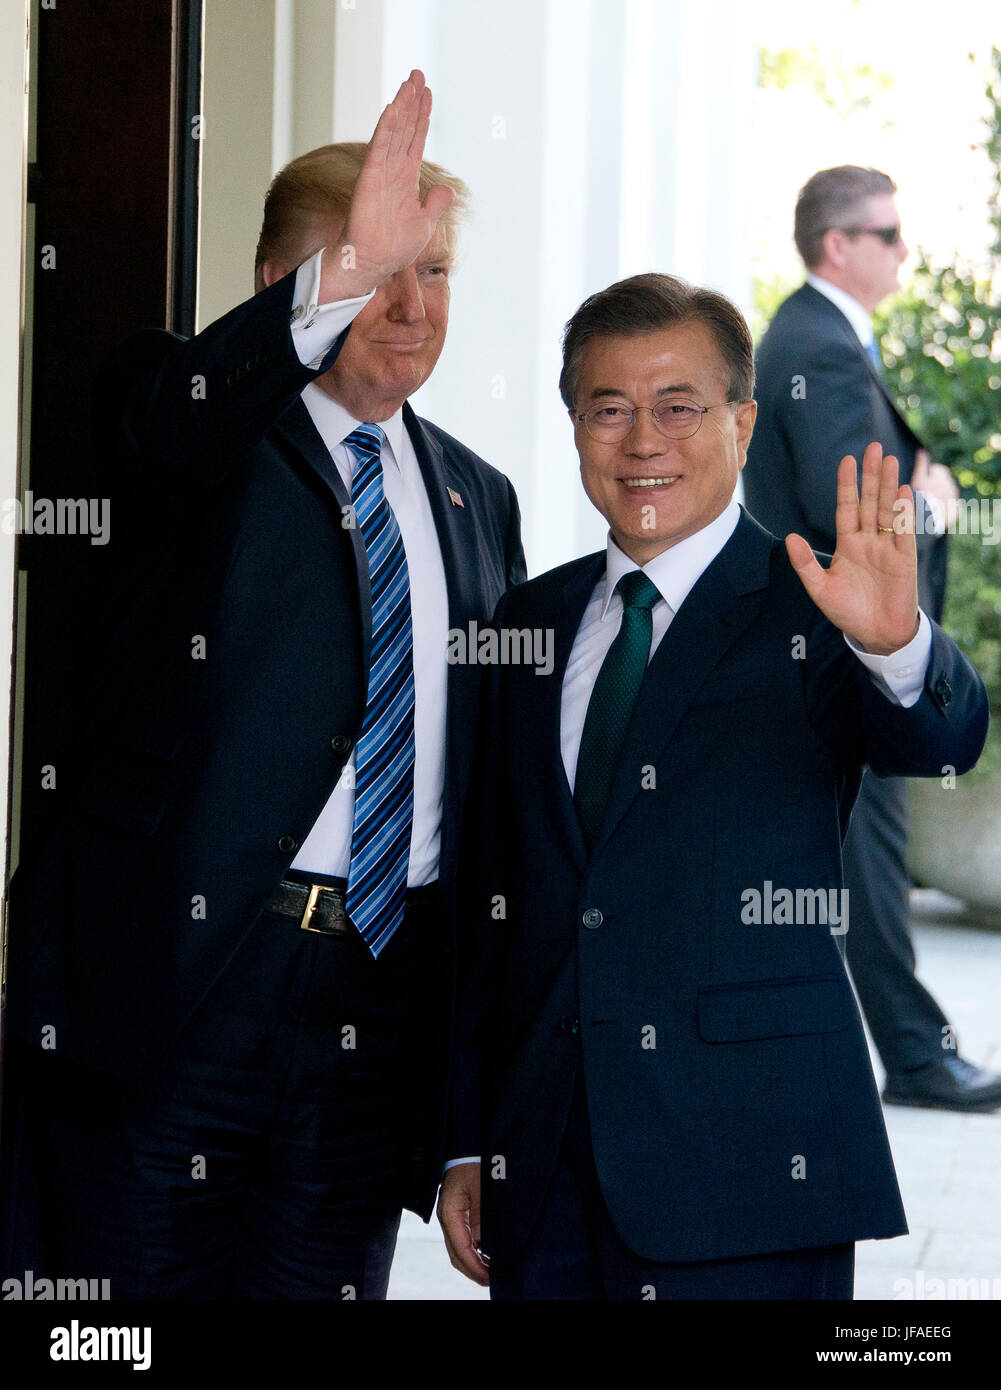 United States President Donald J. Trump welcomes President Moon Jae-in of the Republic of Korea at the White House Stock Photo